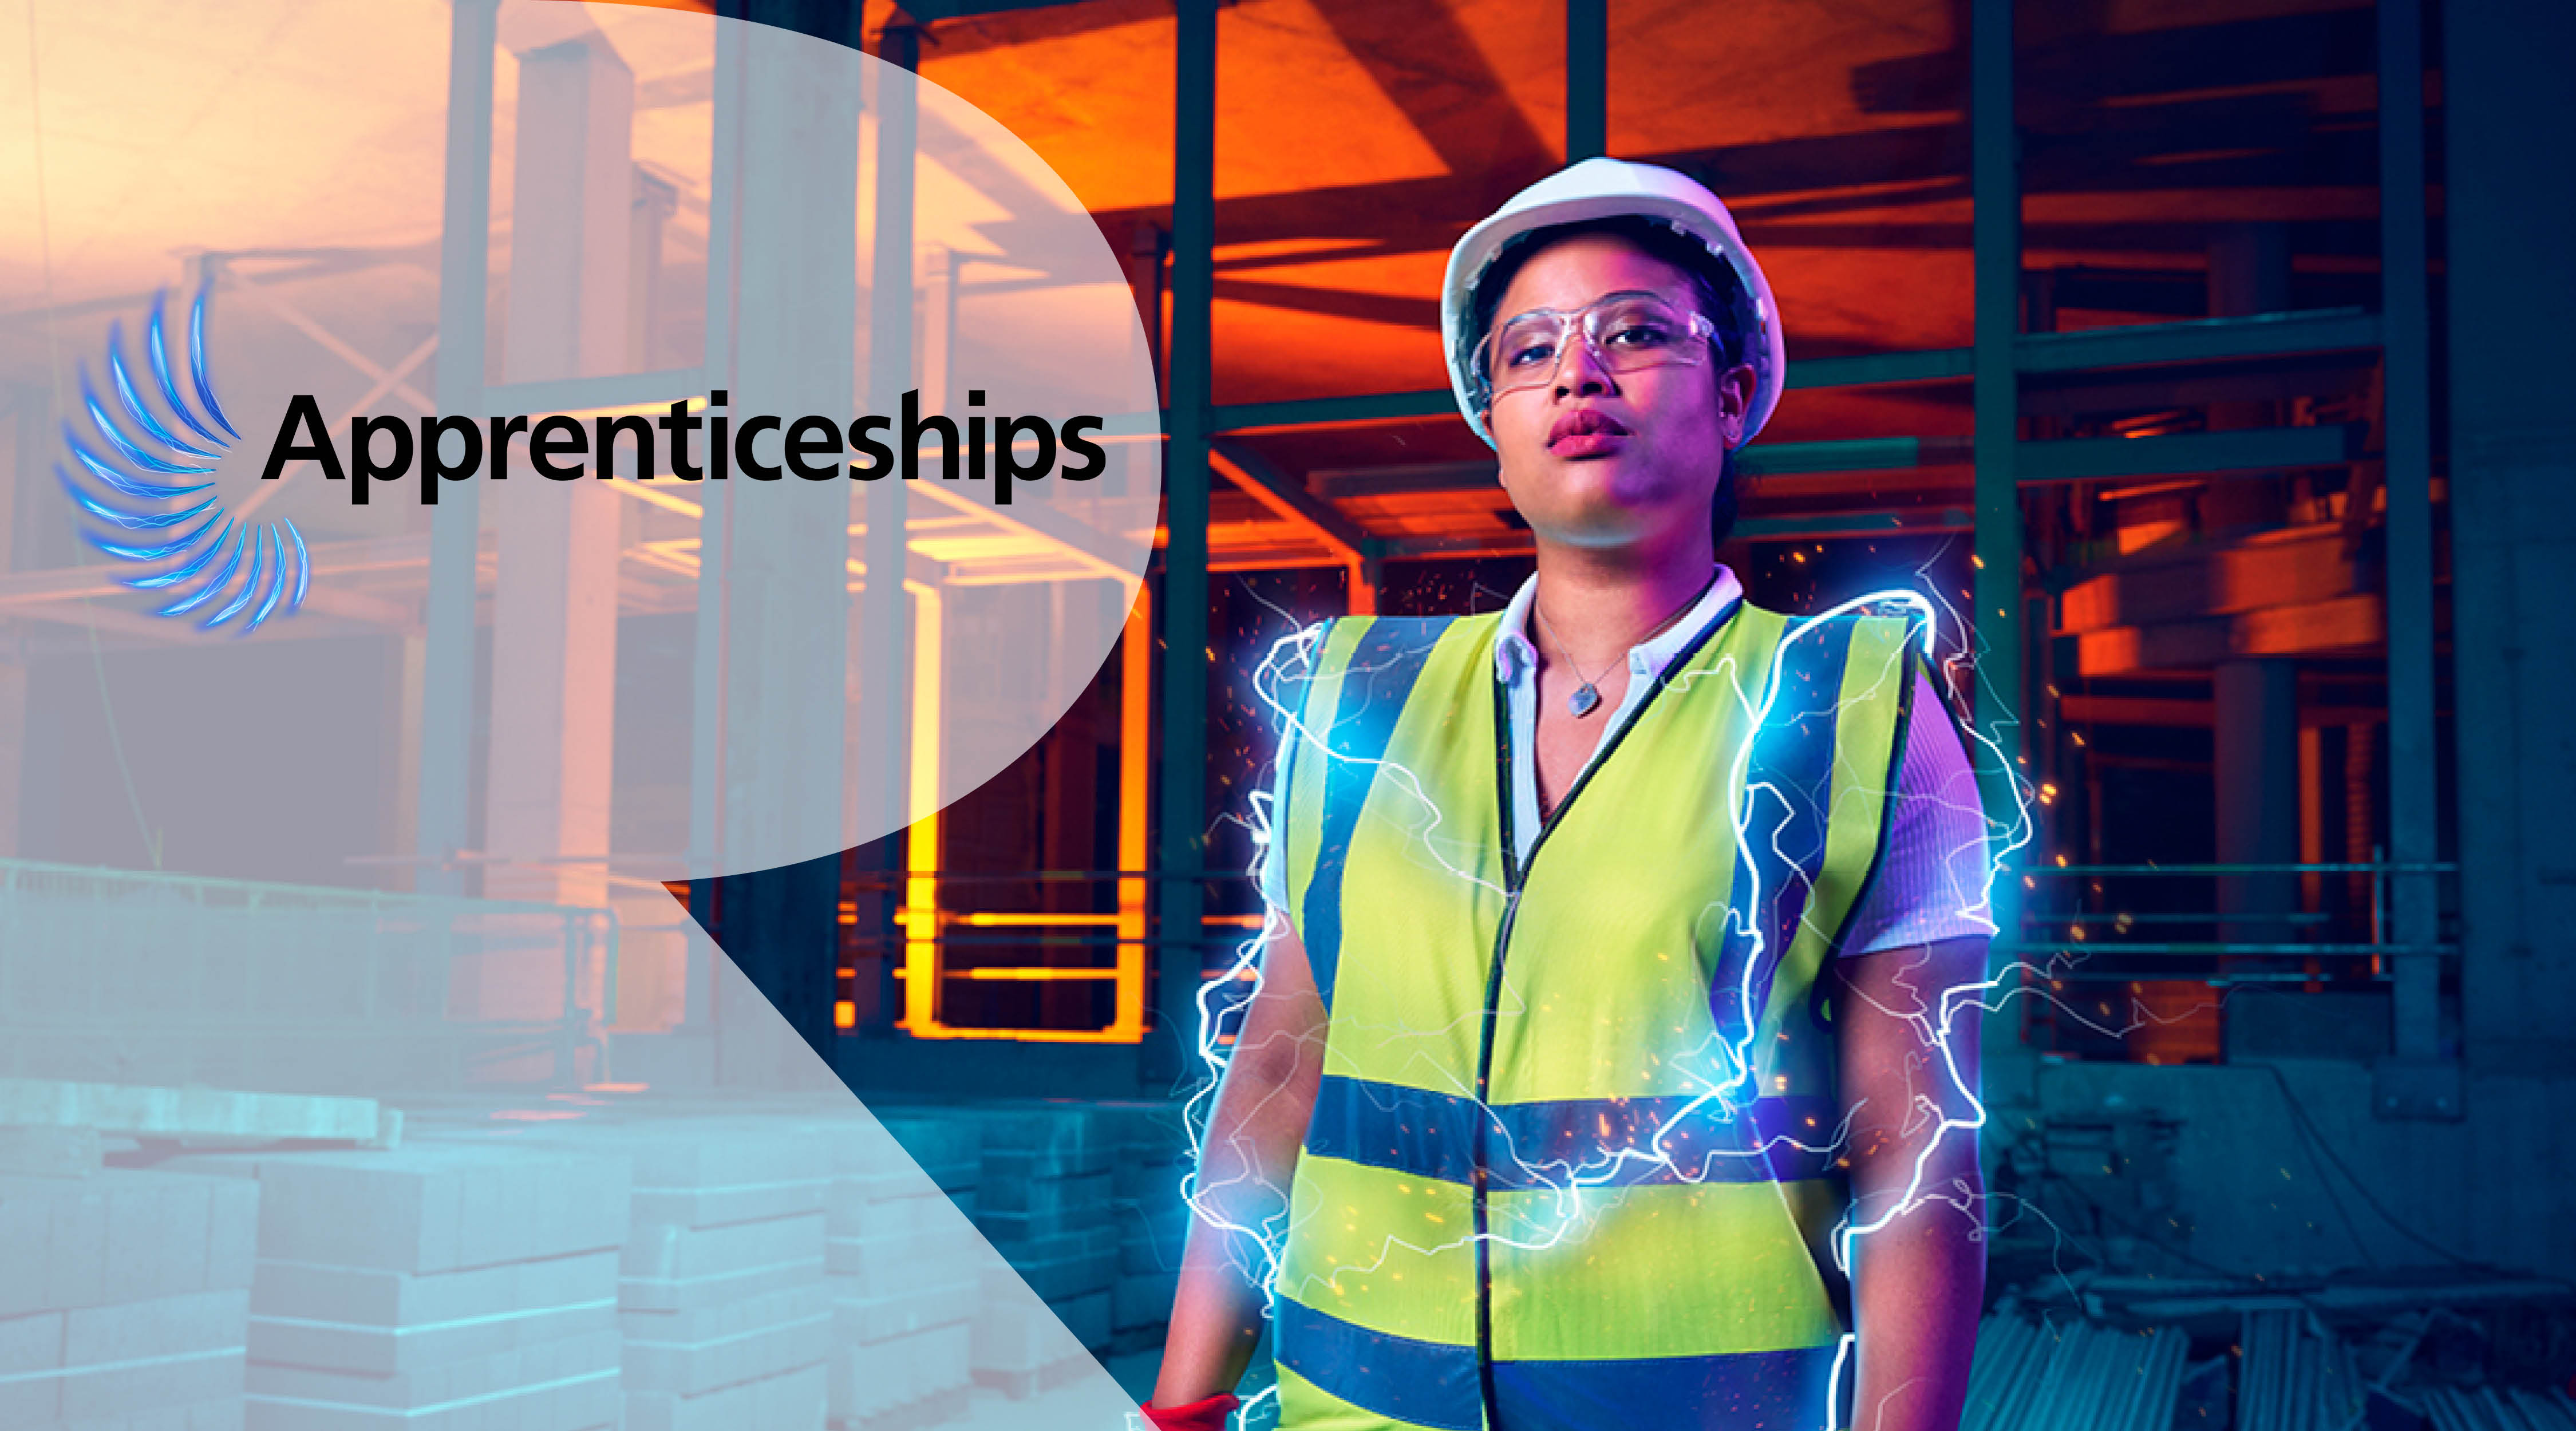 apprenticeships page banner 2020